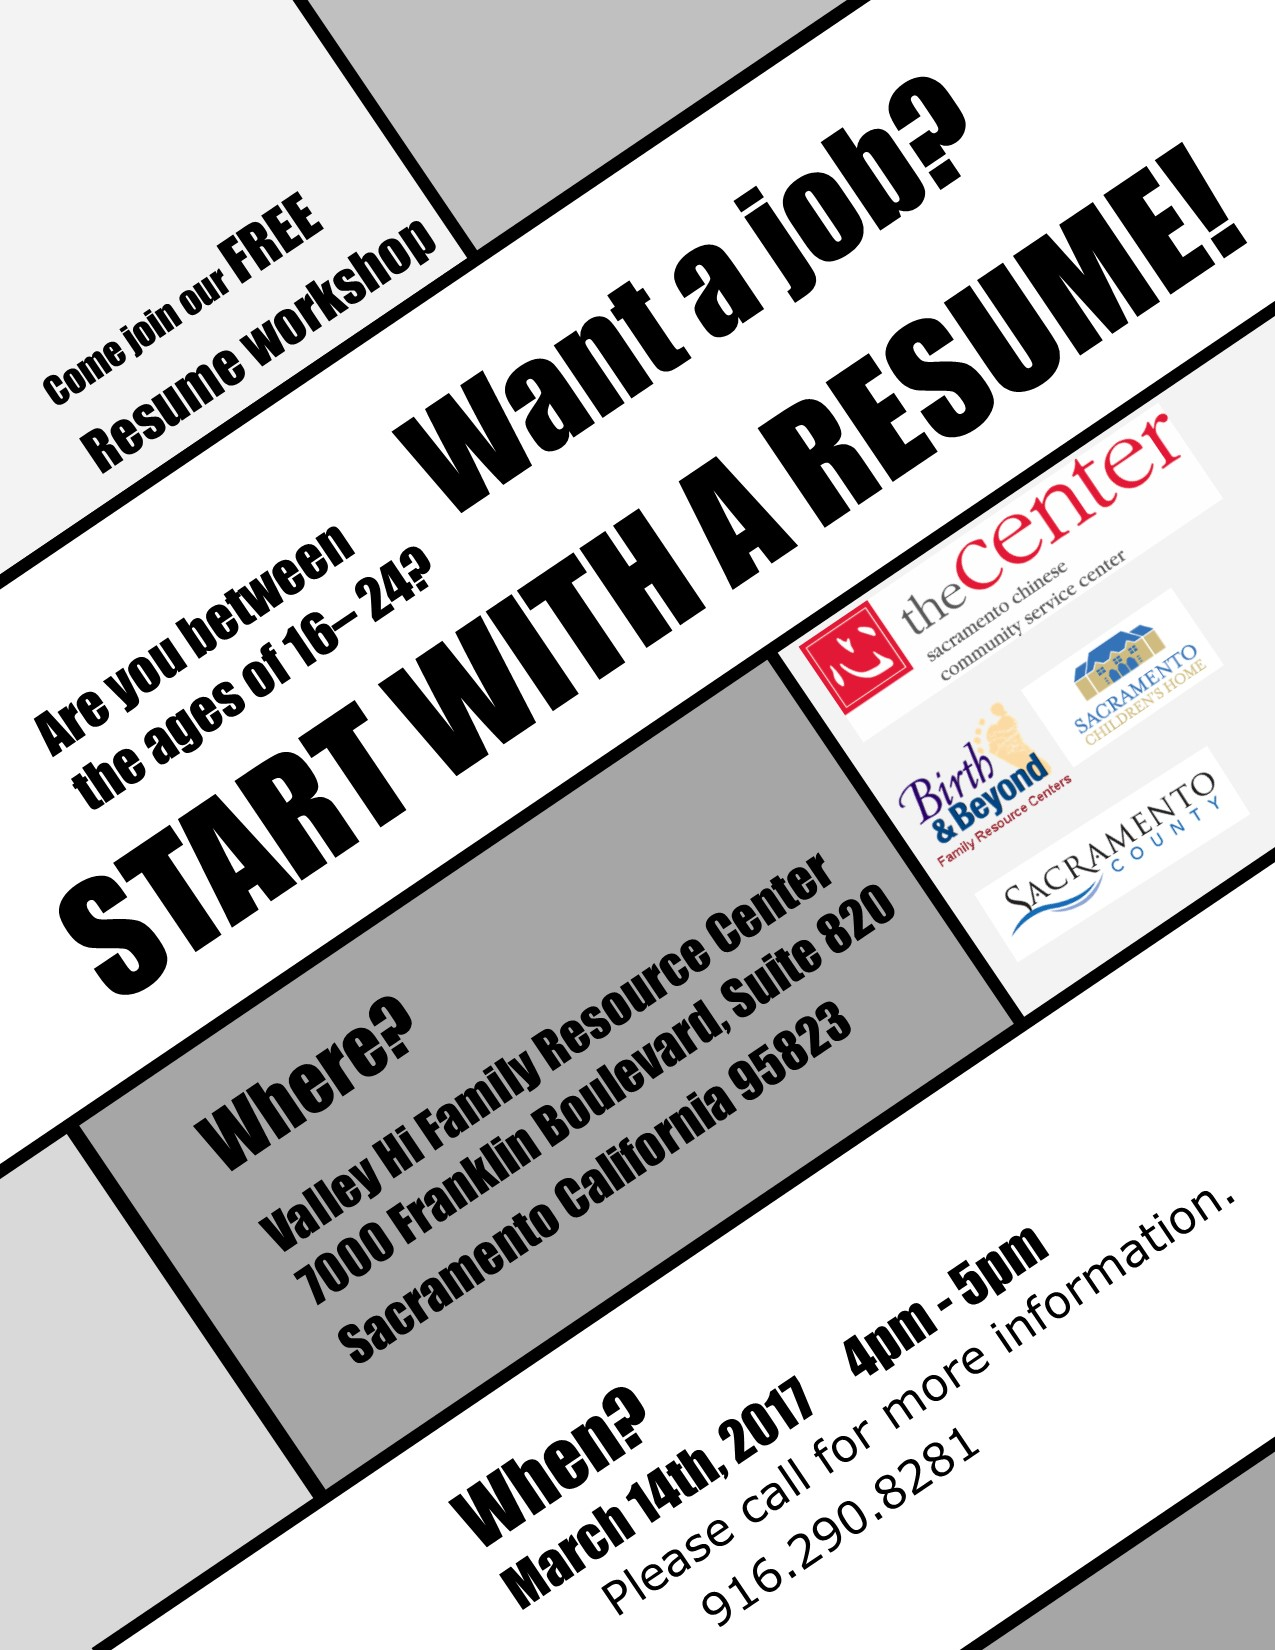 valley hi family resource center resume workshop presented by valley